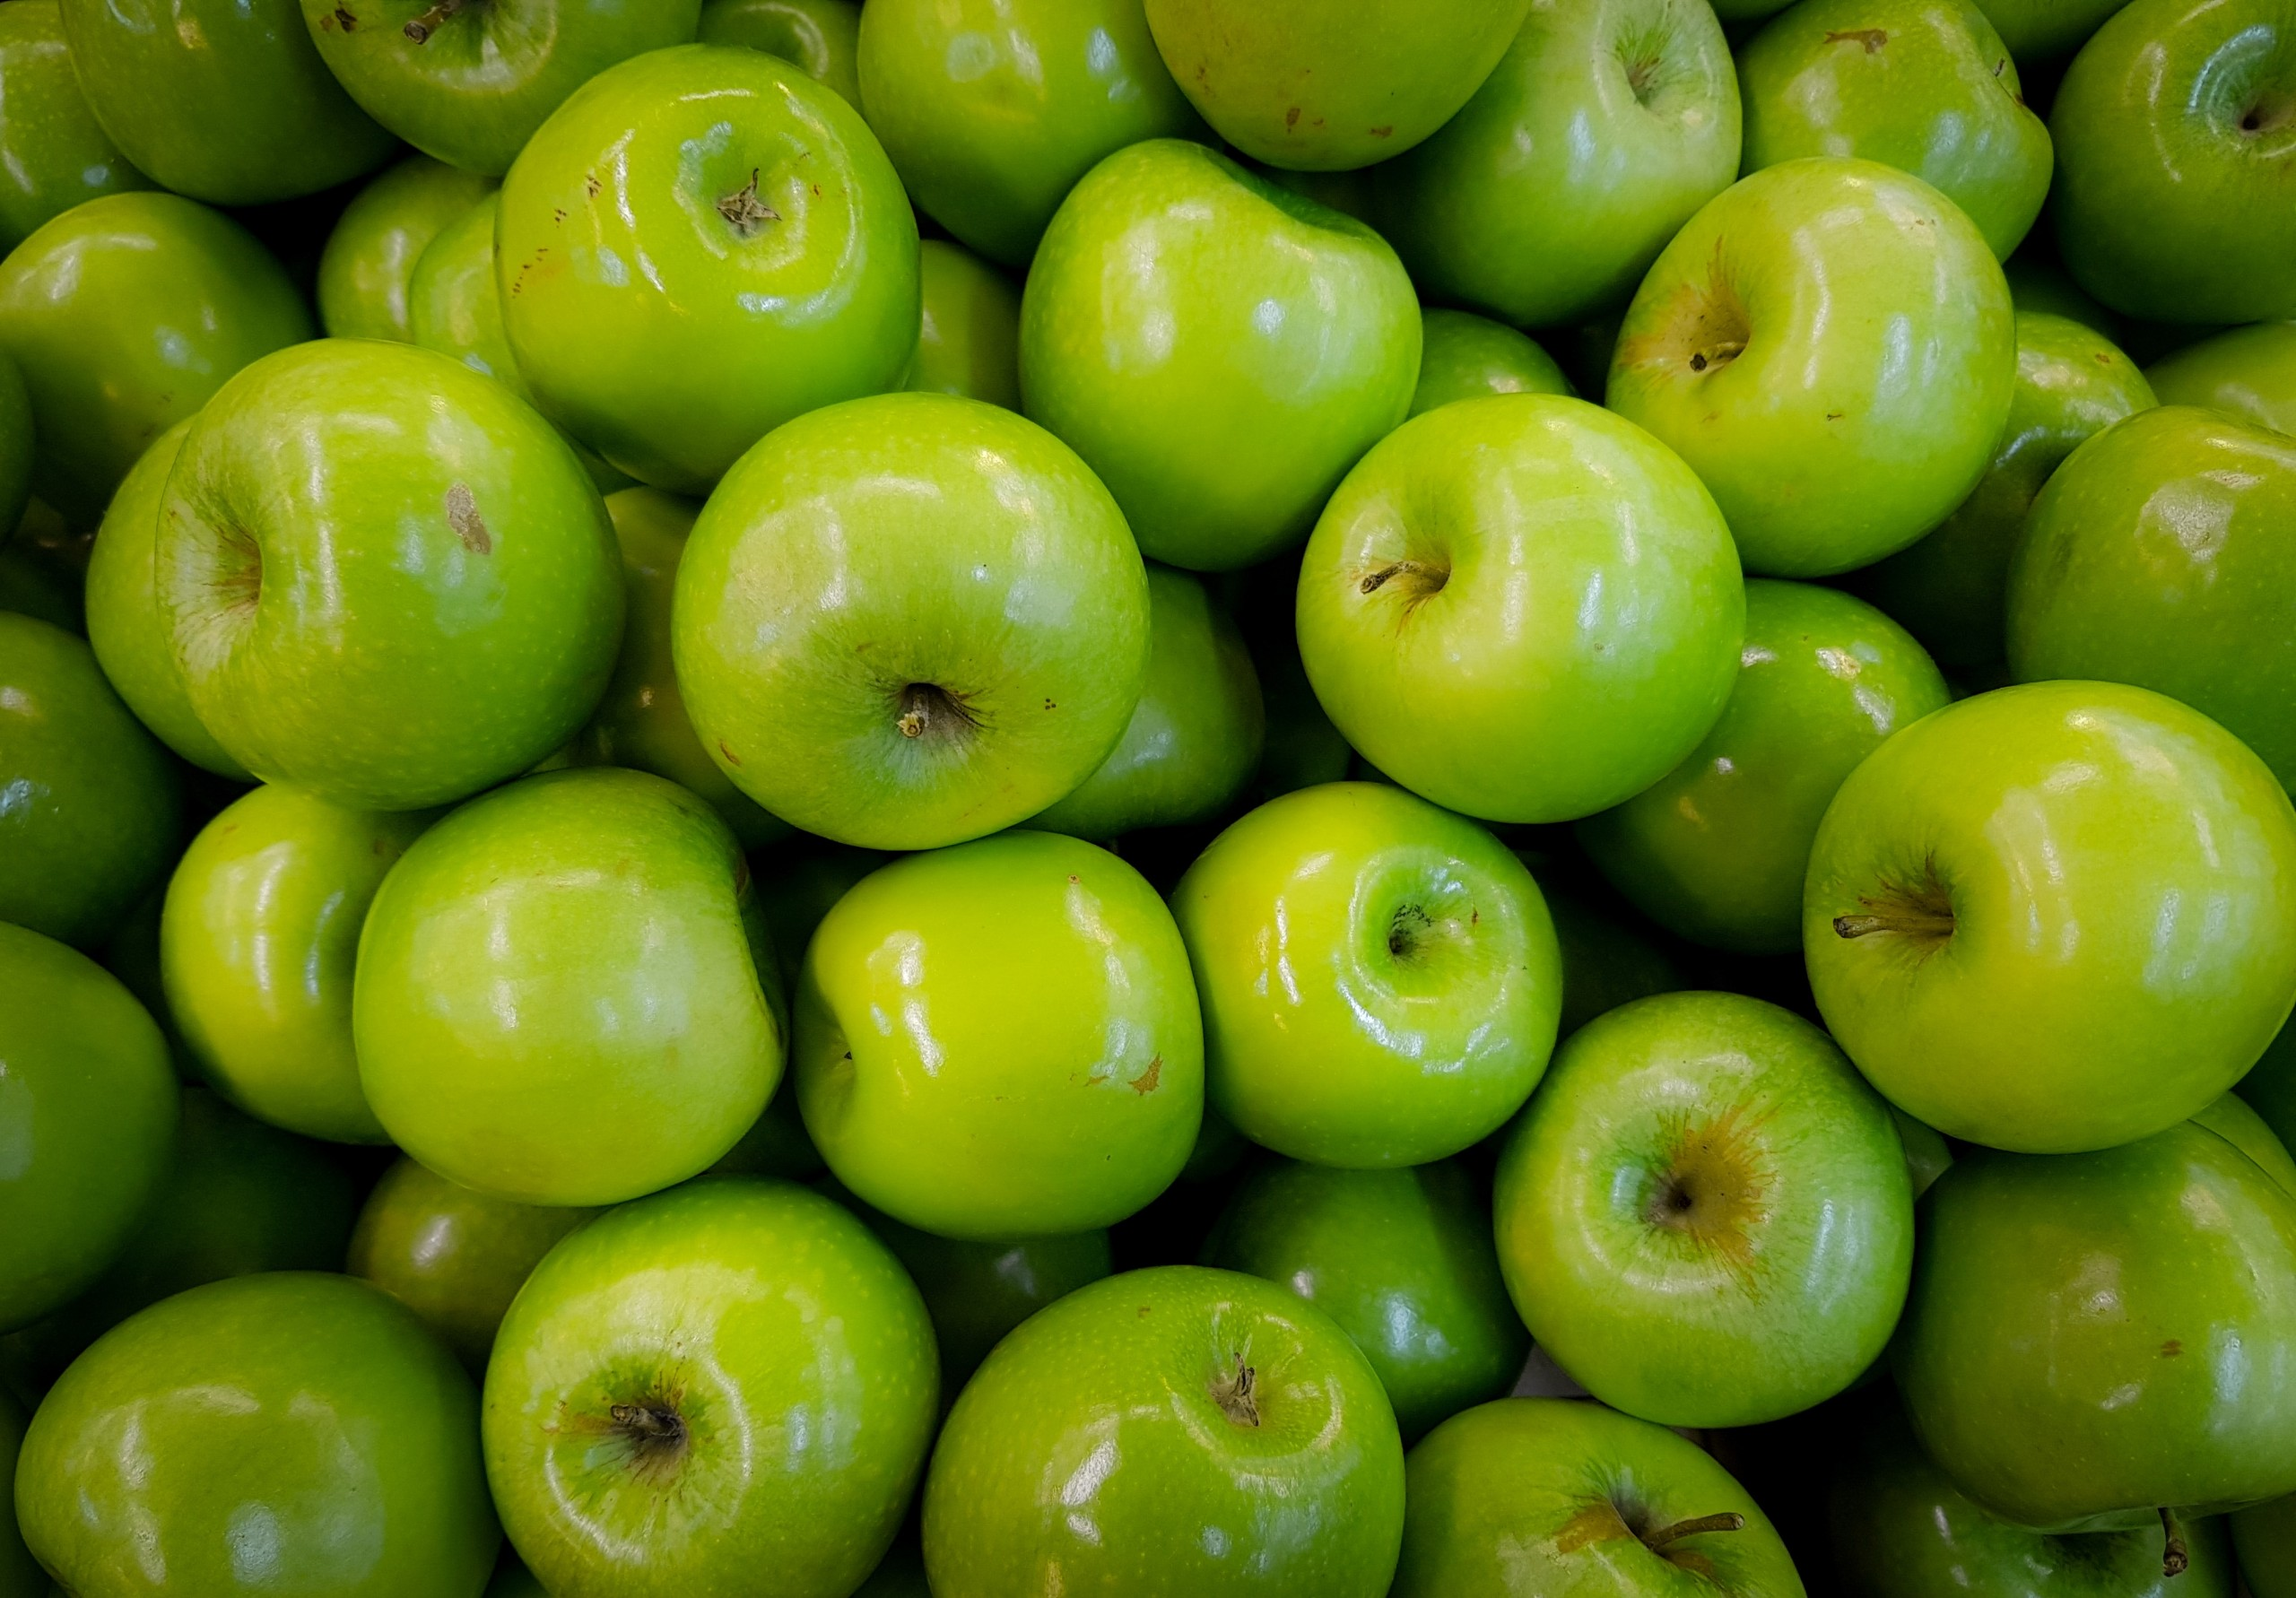 Pile of Granny Smith Apples.